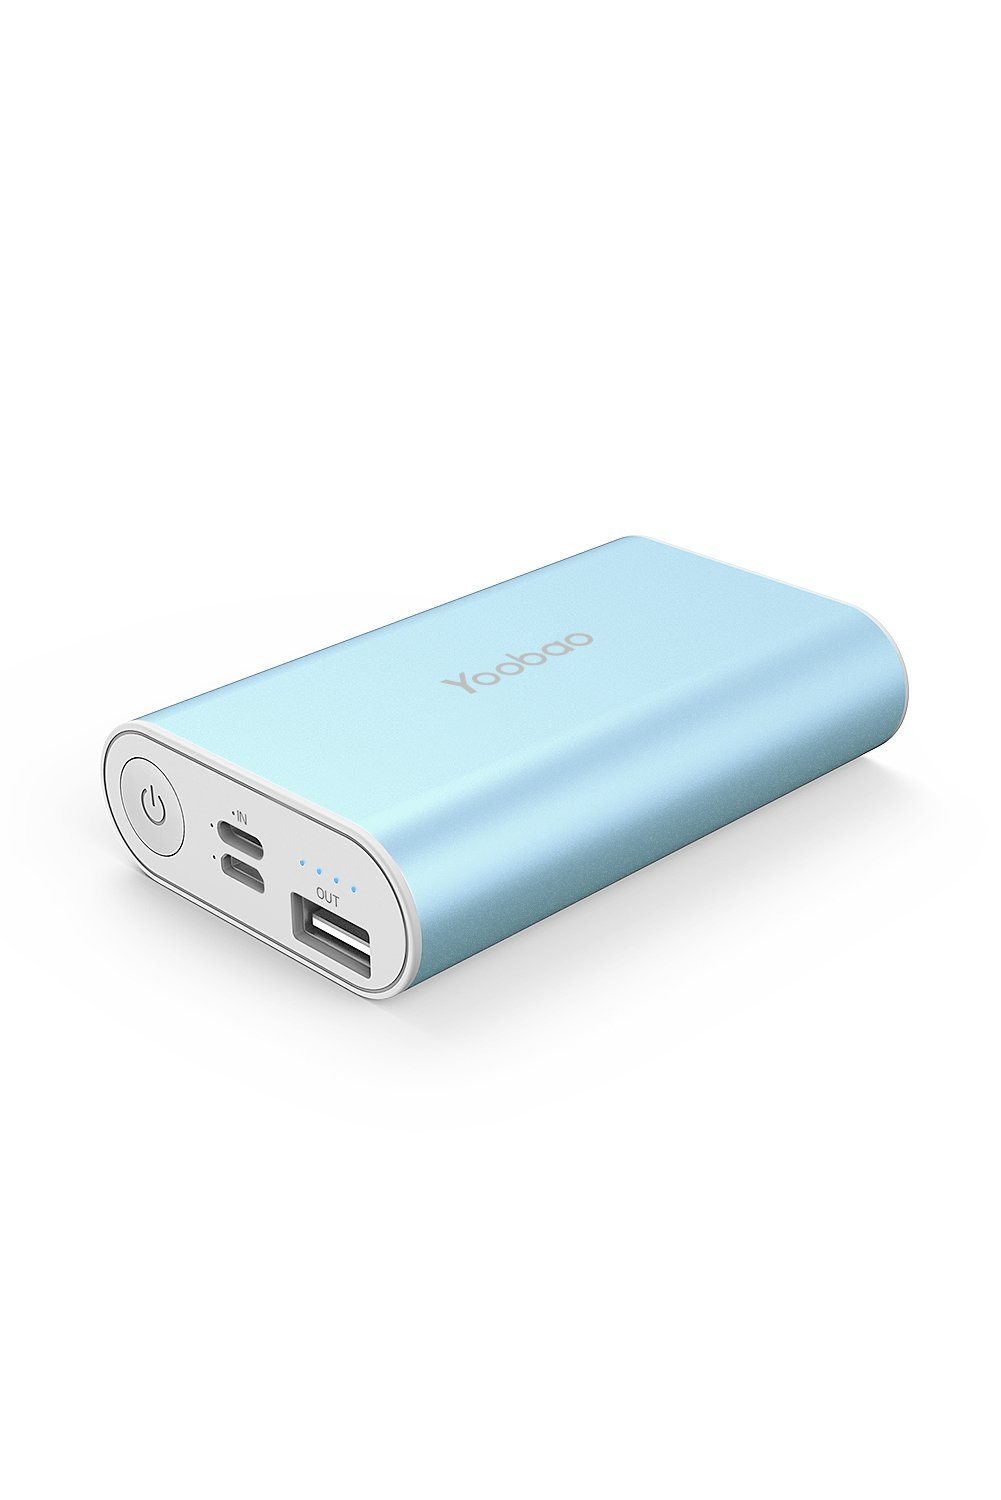 Portable iPhone Charger, Yoobao 6000mAh Ultra Compact Power Bank External Battery Pack Cellphone Battery Backup Powerbank (Lightning & Micro Dual Input) Compatible iPhone Samsung Cell Phone - Blue